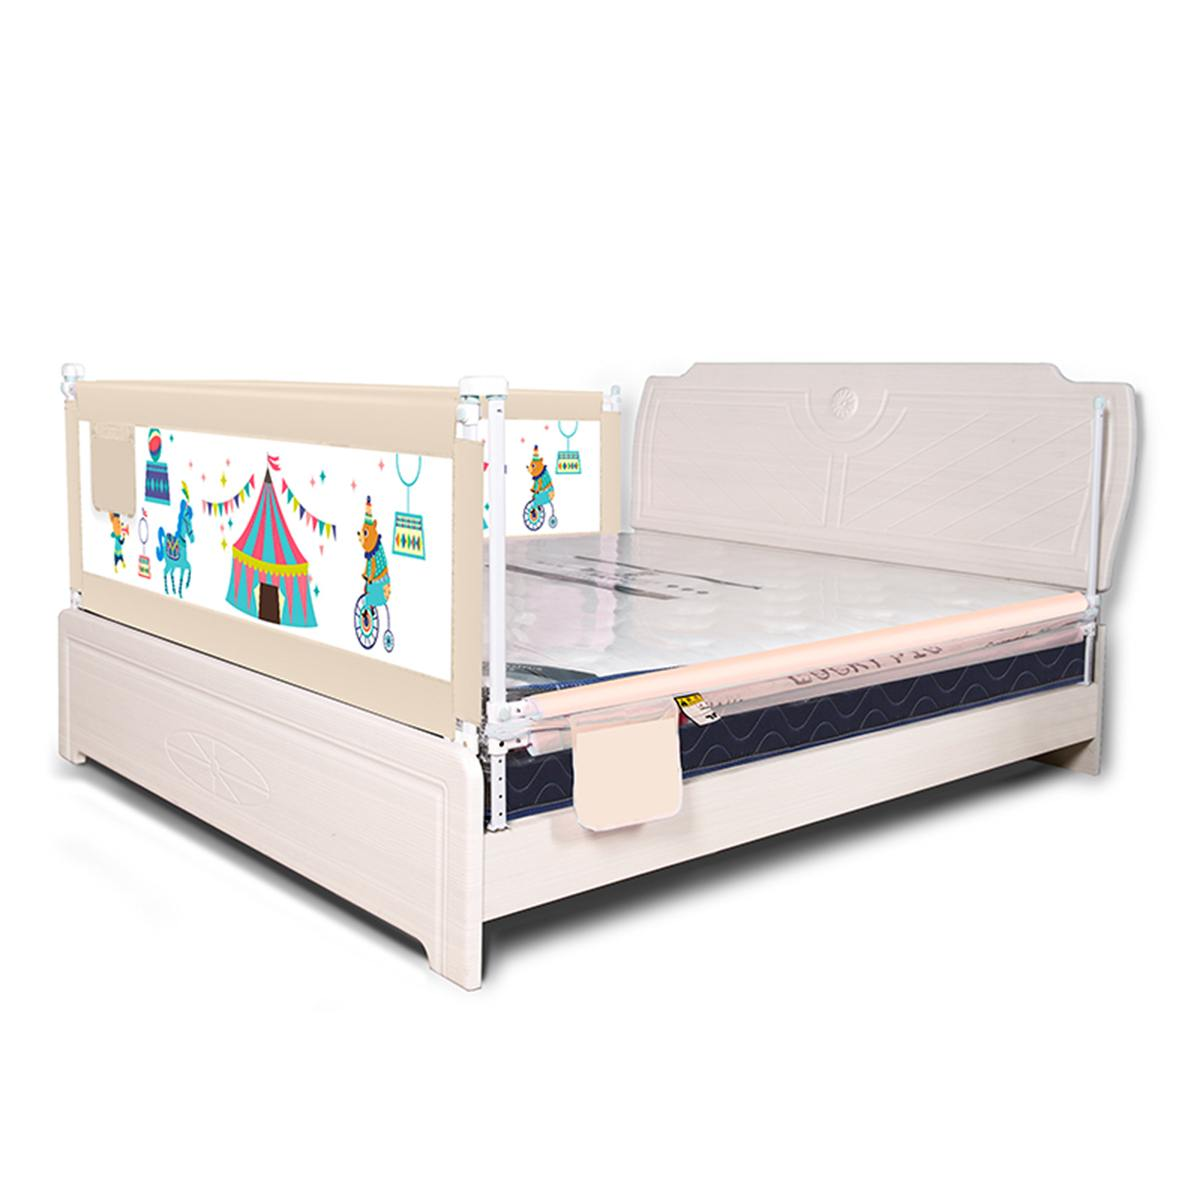 63 to 83 cm Height Adjustable Kid Bed Guard with Foldable Railing Sleep for Baby Safety from Falling from Bed 7